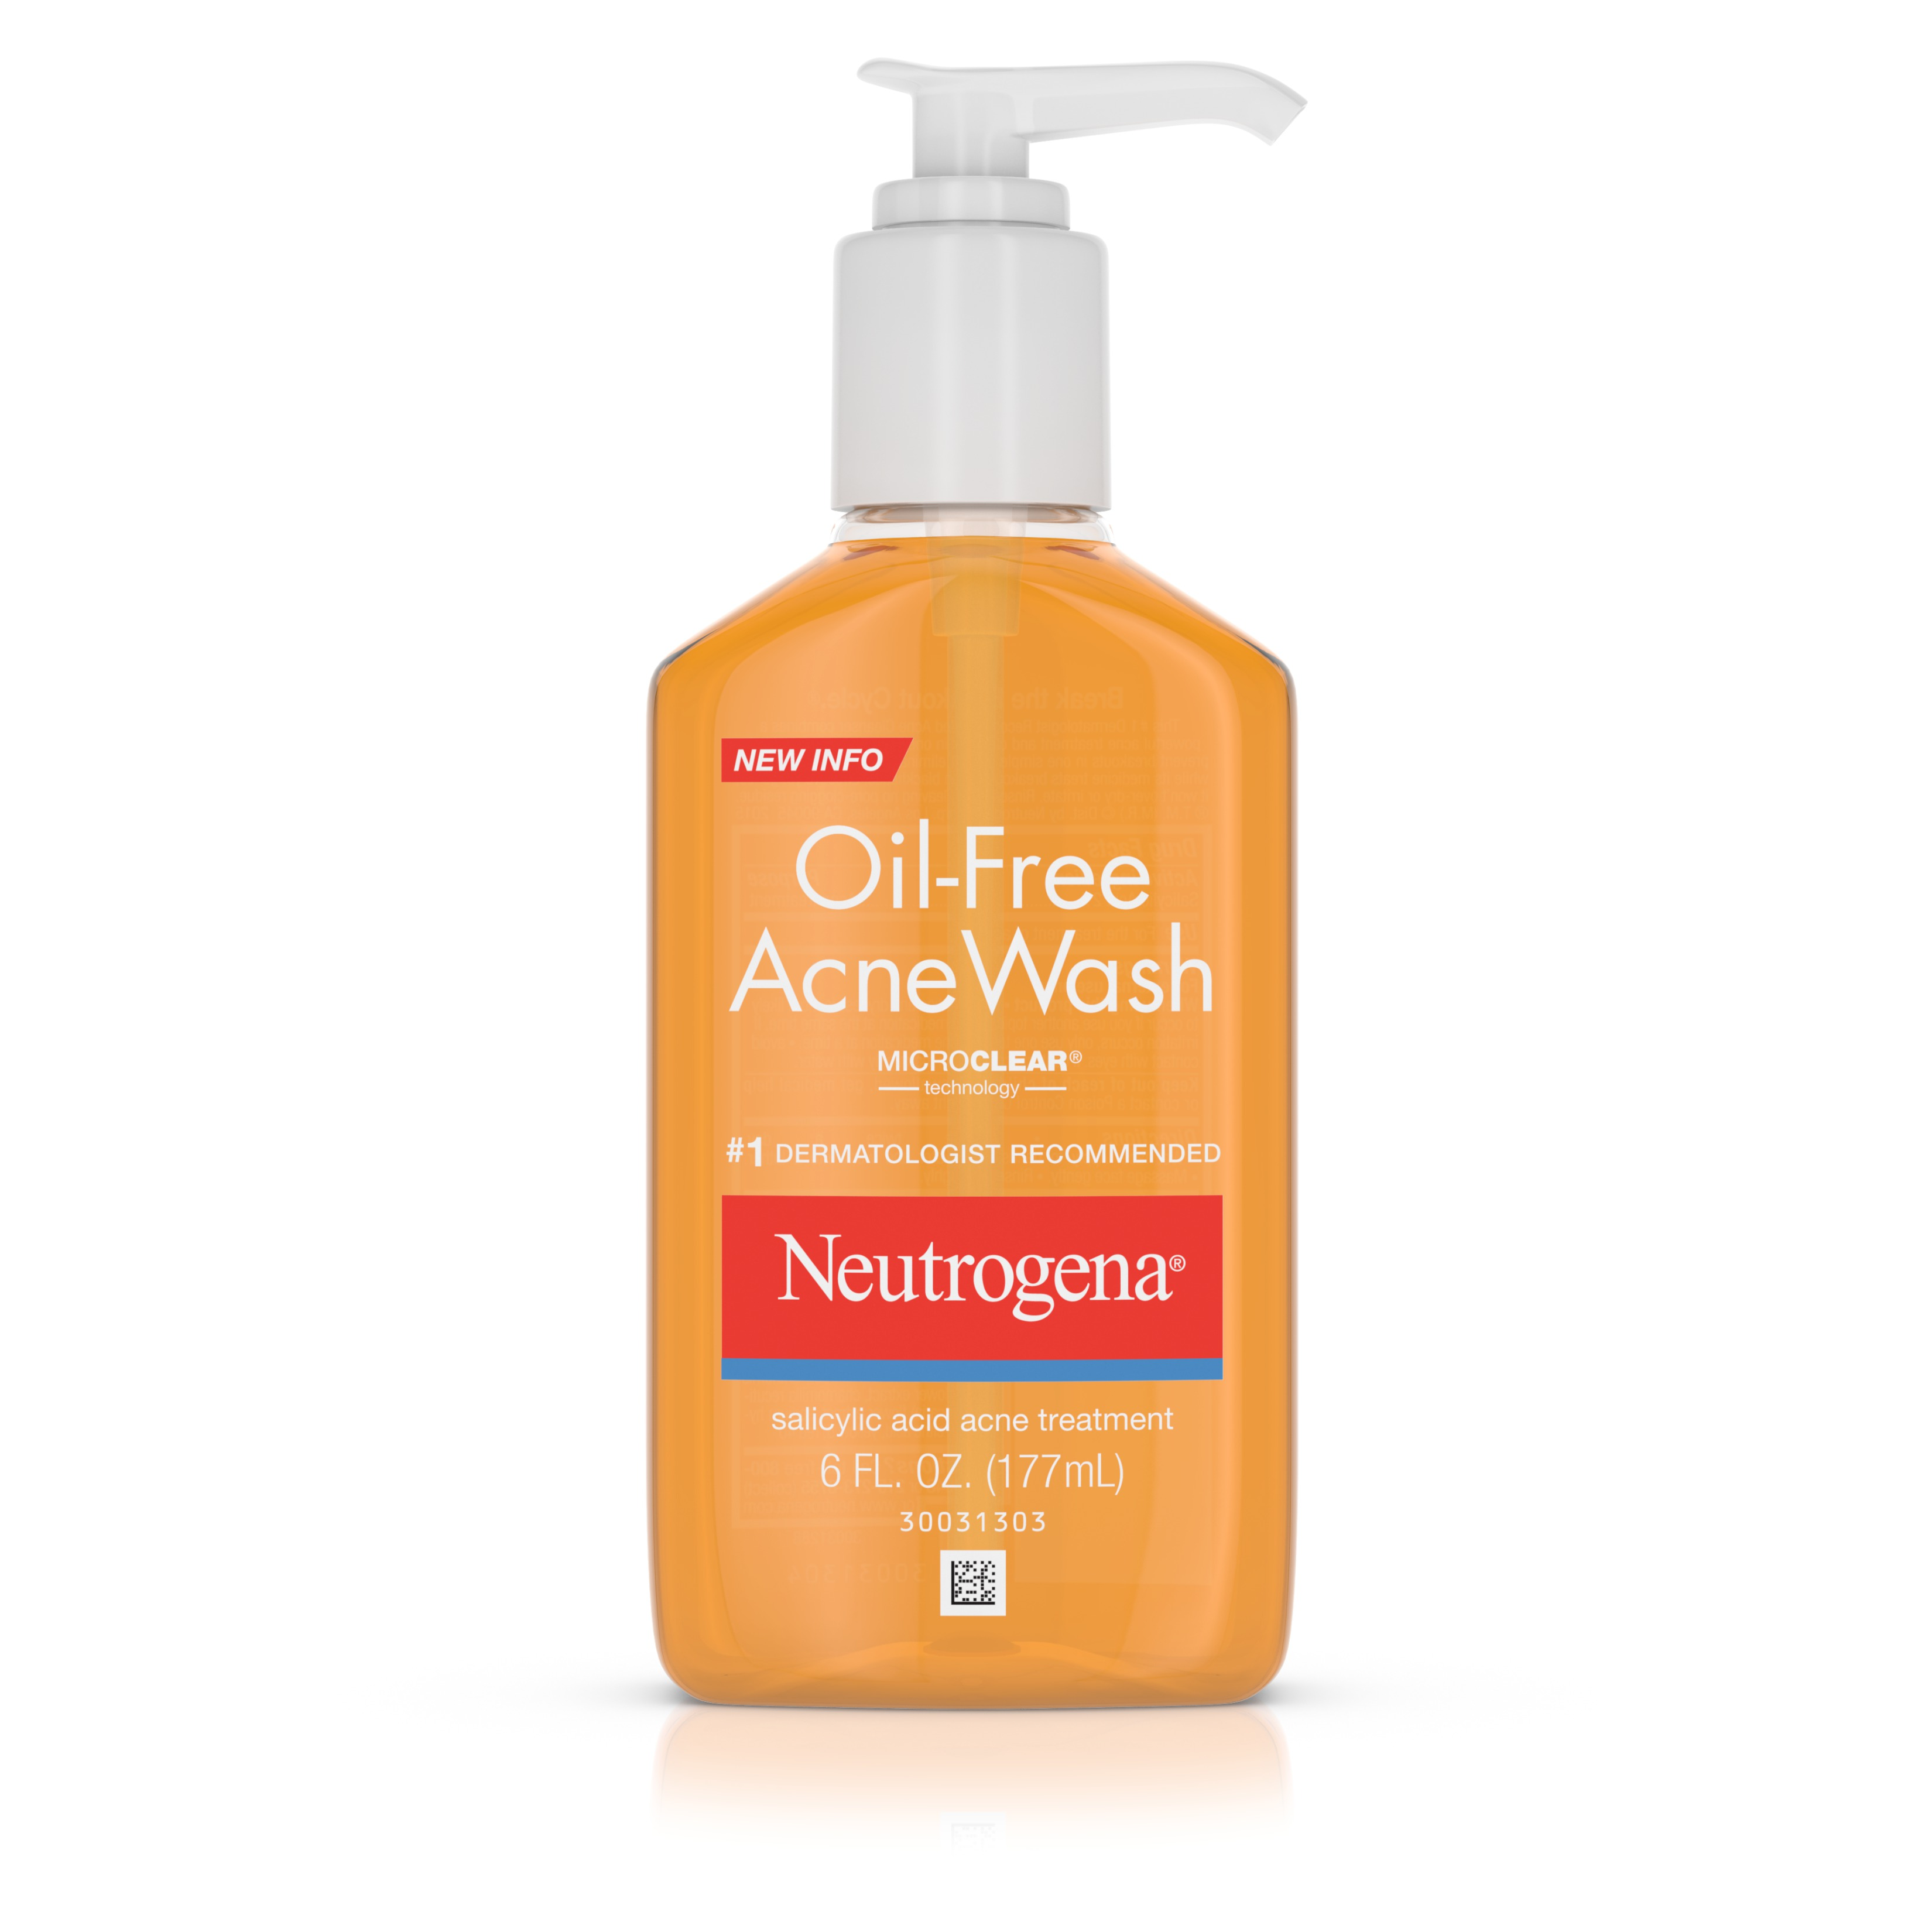 Neutrogena Oil-Free Acne Face Wash With Salicylic Acid, 6 Oz.